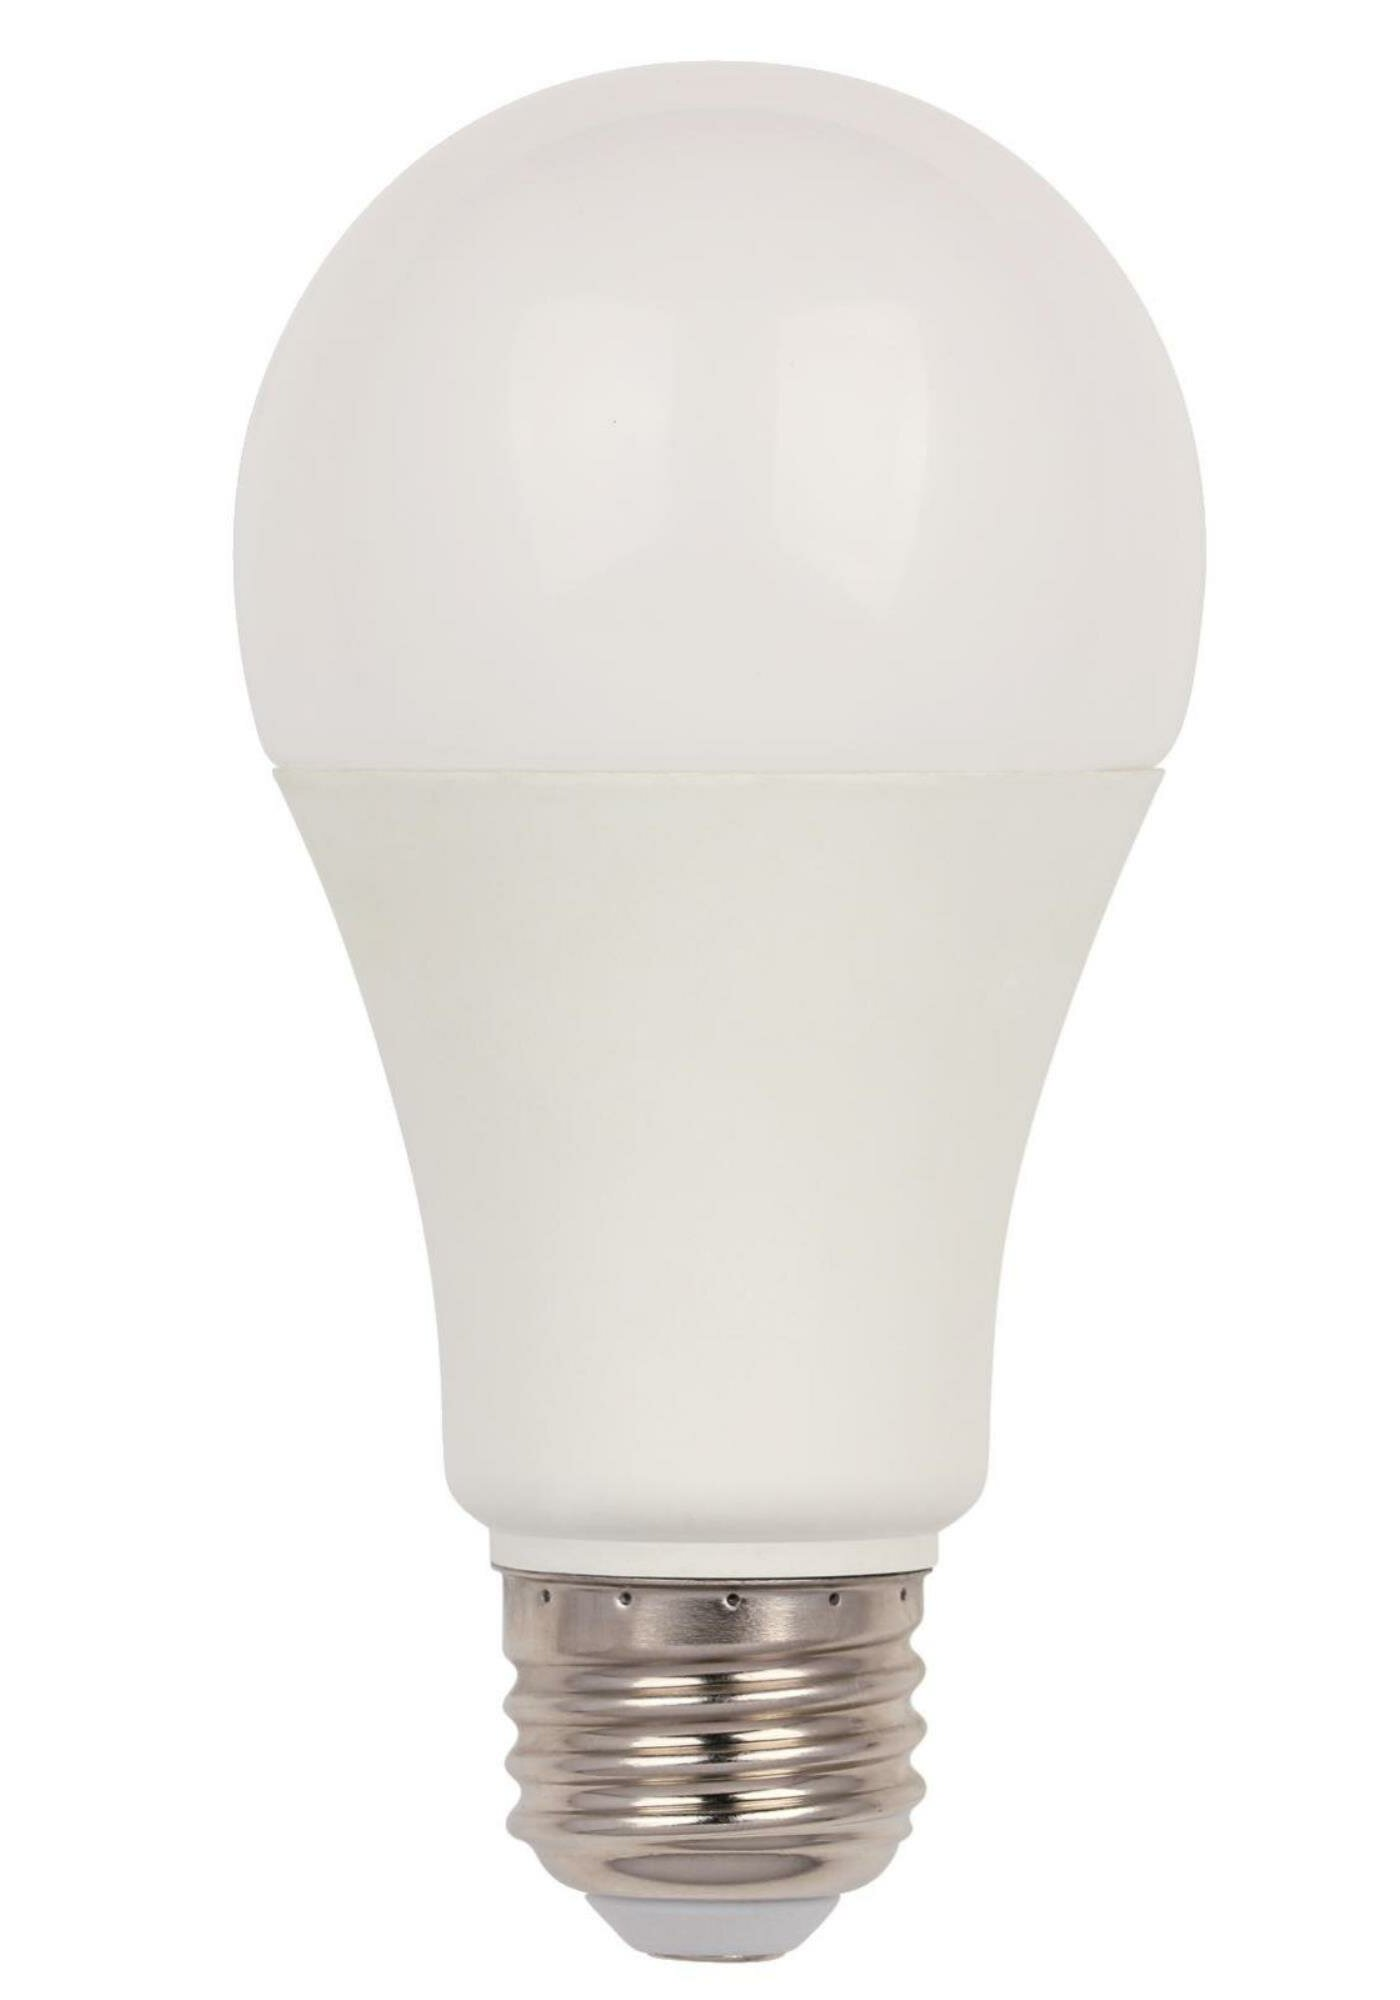 Westinghouse Lighting 100W Equivalent E26/Medium LED Standard Light Bulb |  Wayfair